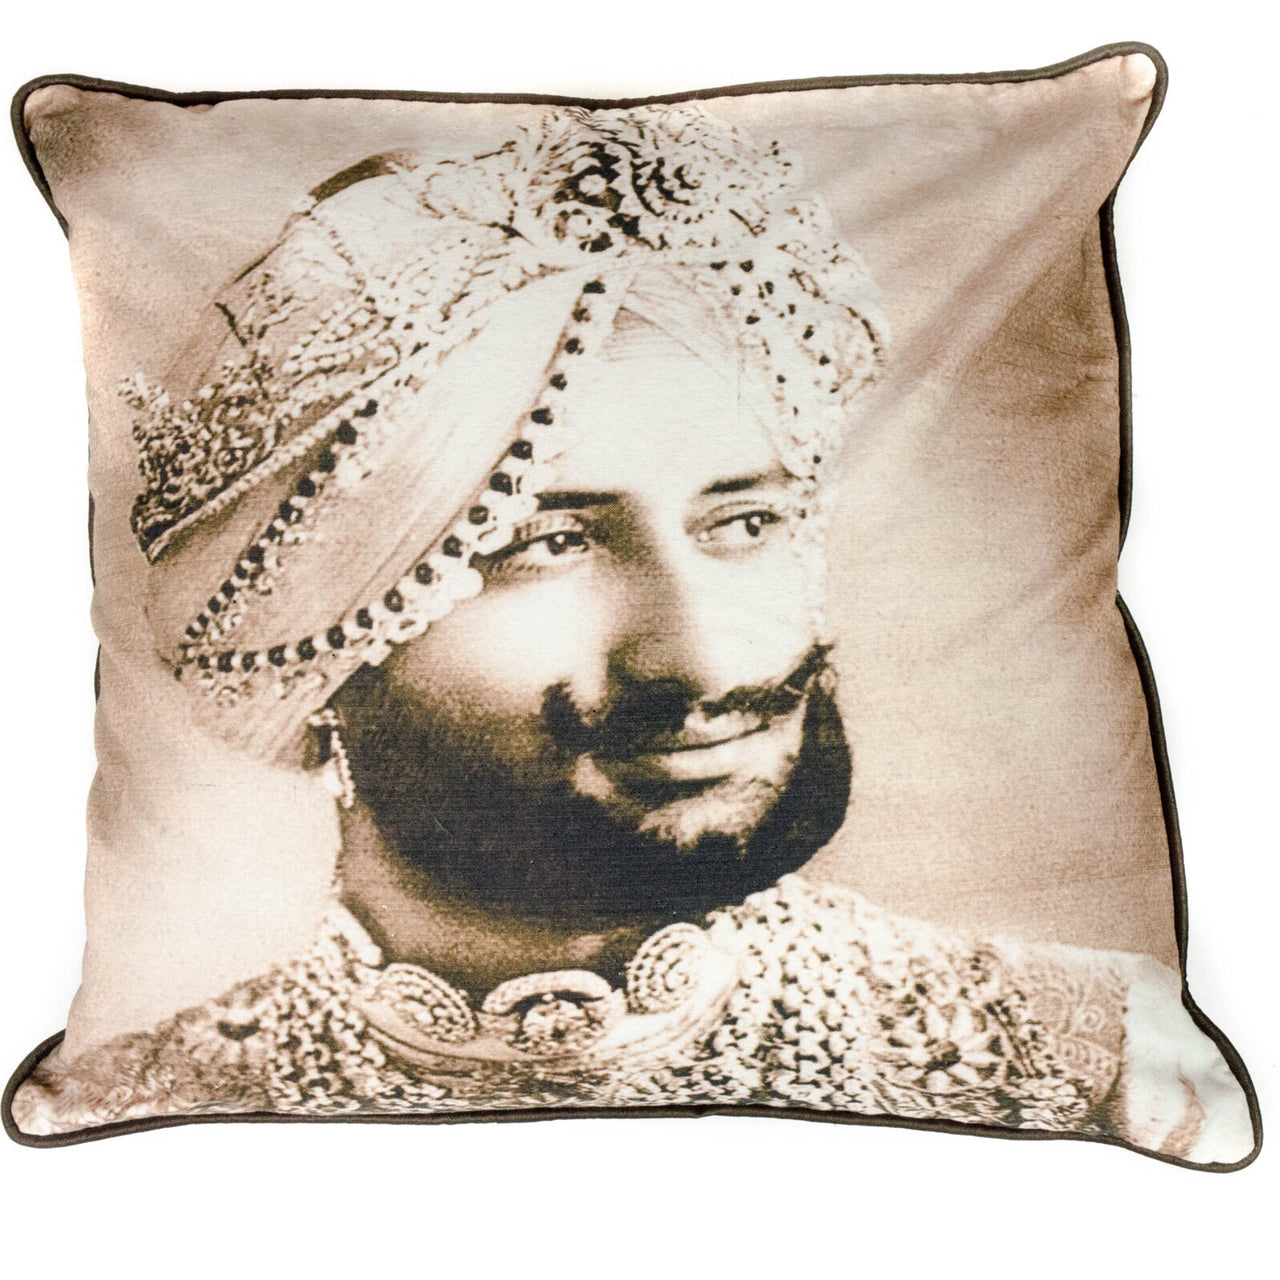 Jaipur Atelier Jaipur Jewel Imperial Accent Cushion